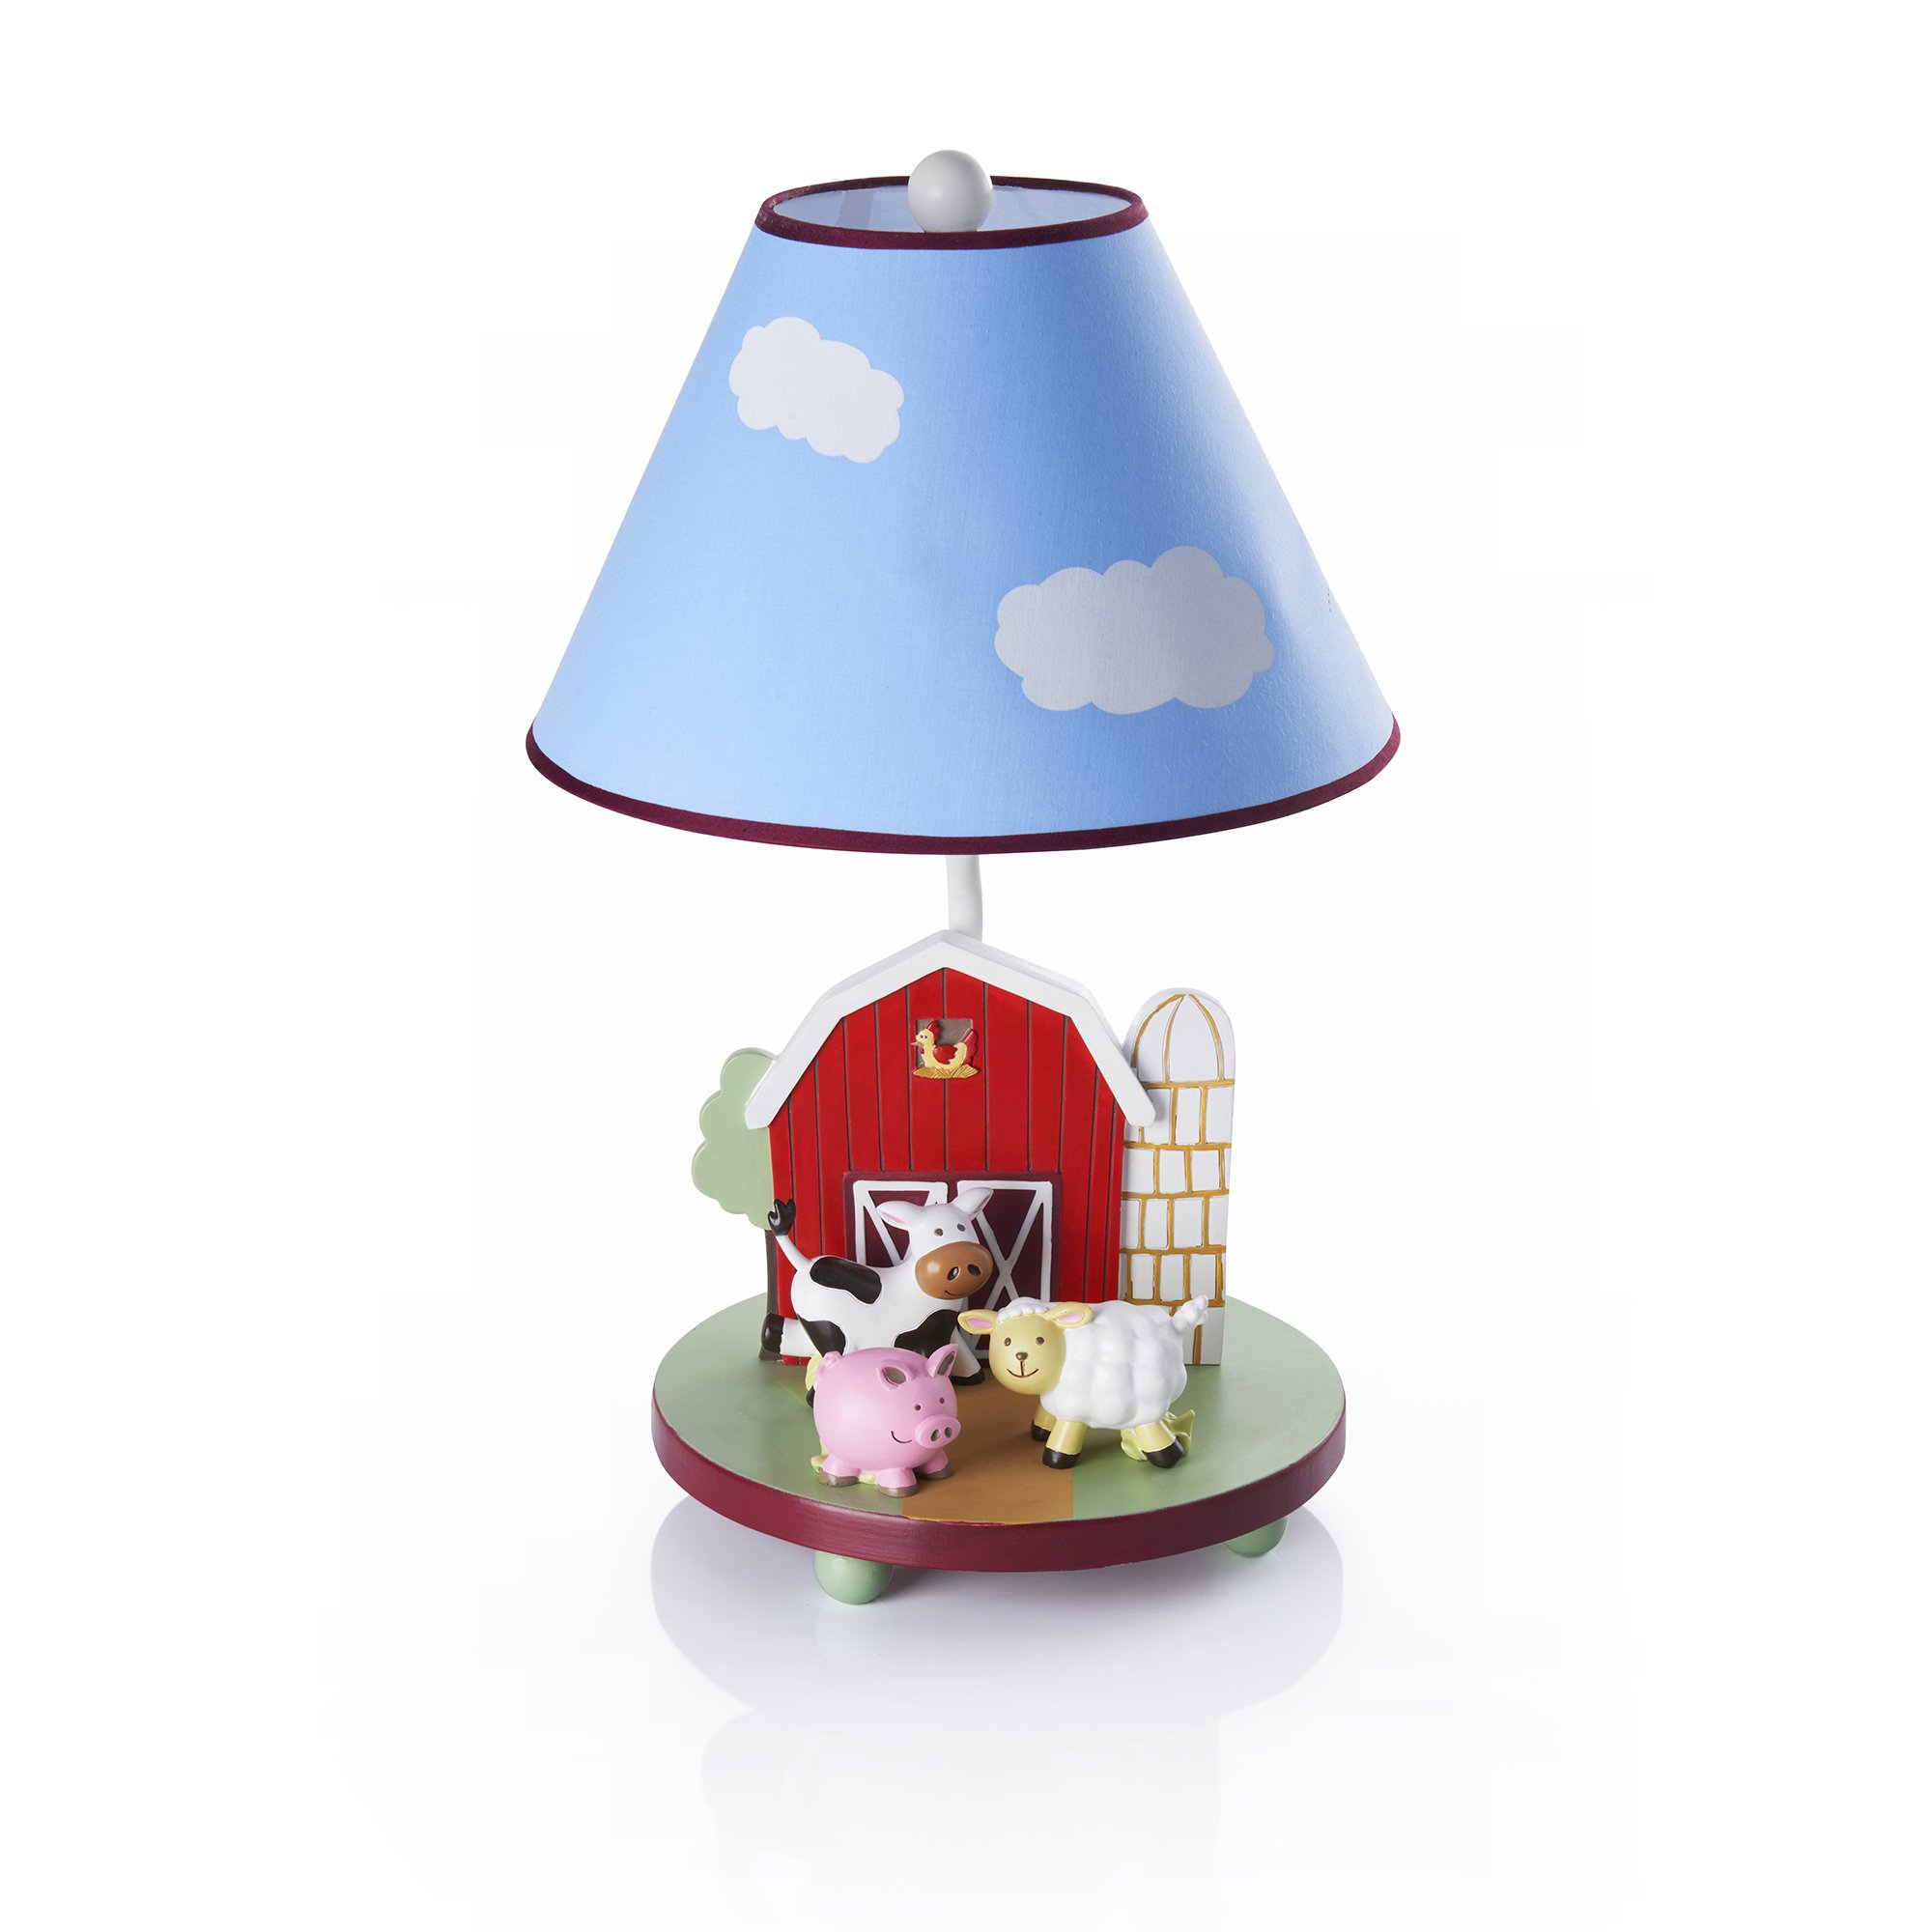 Guidecraft Hand-painted & Hand Crafted Farm Friends Kids Table Lamp G86707